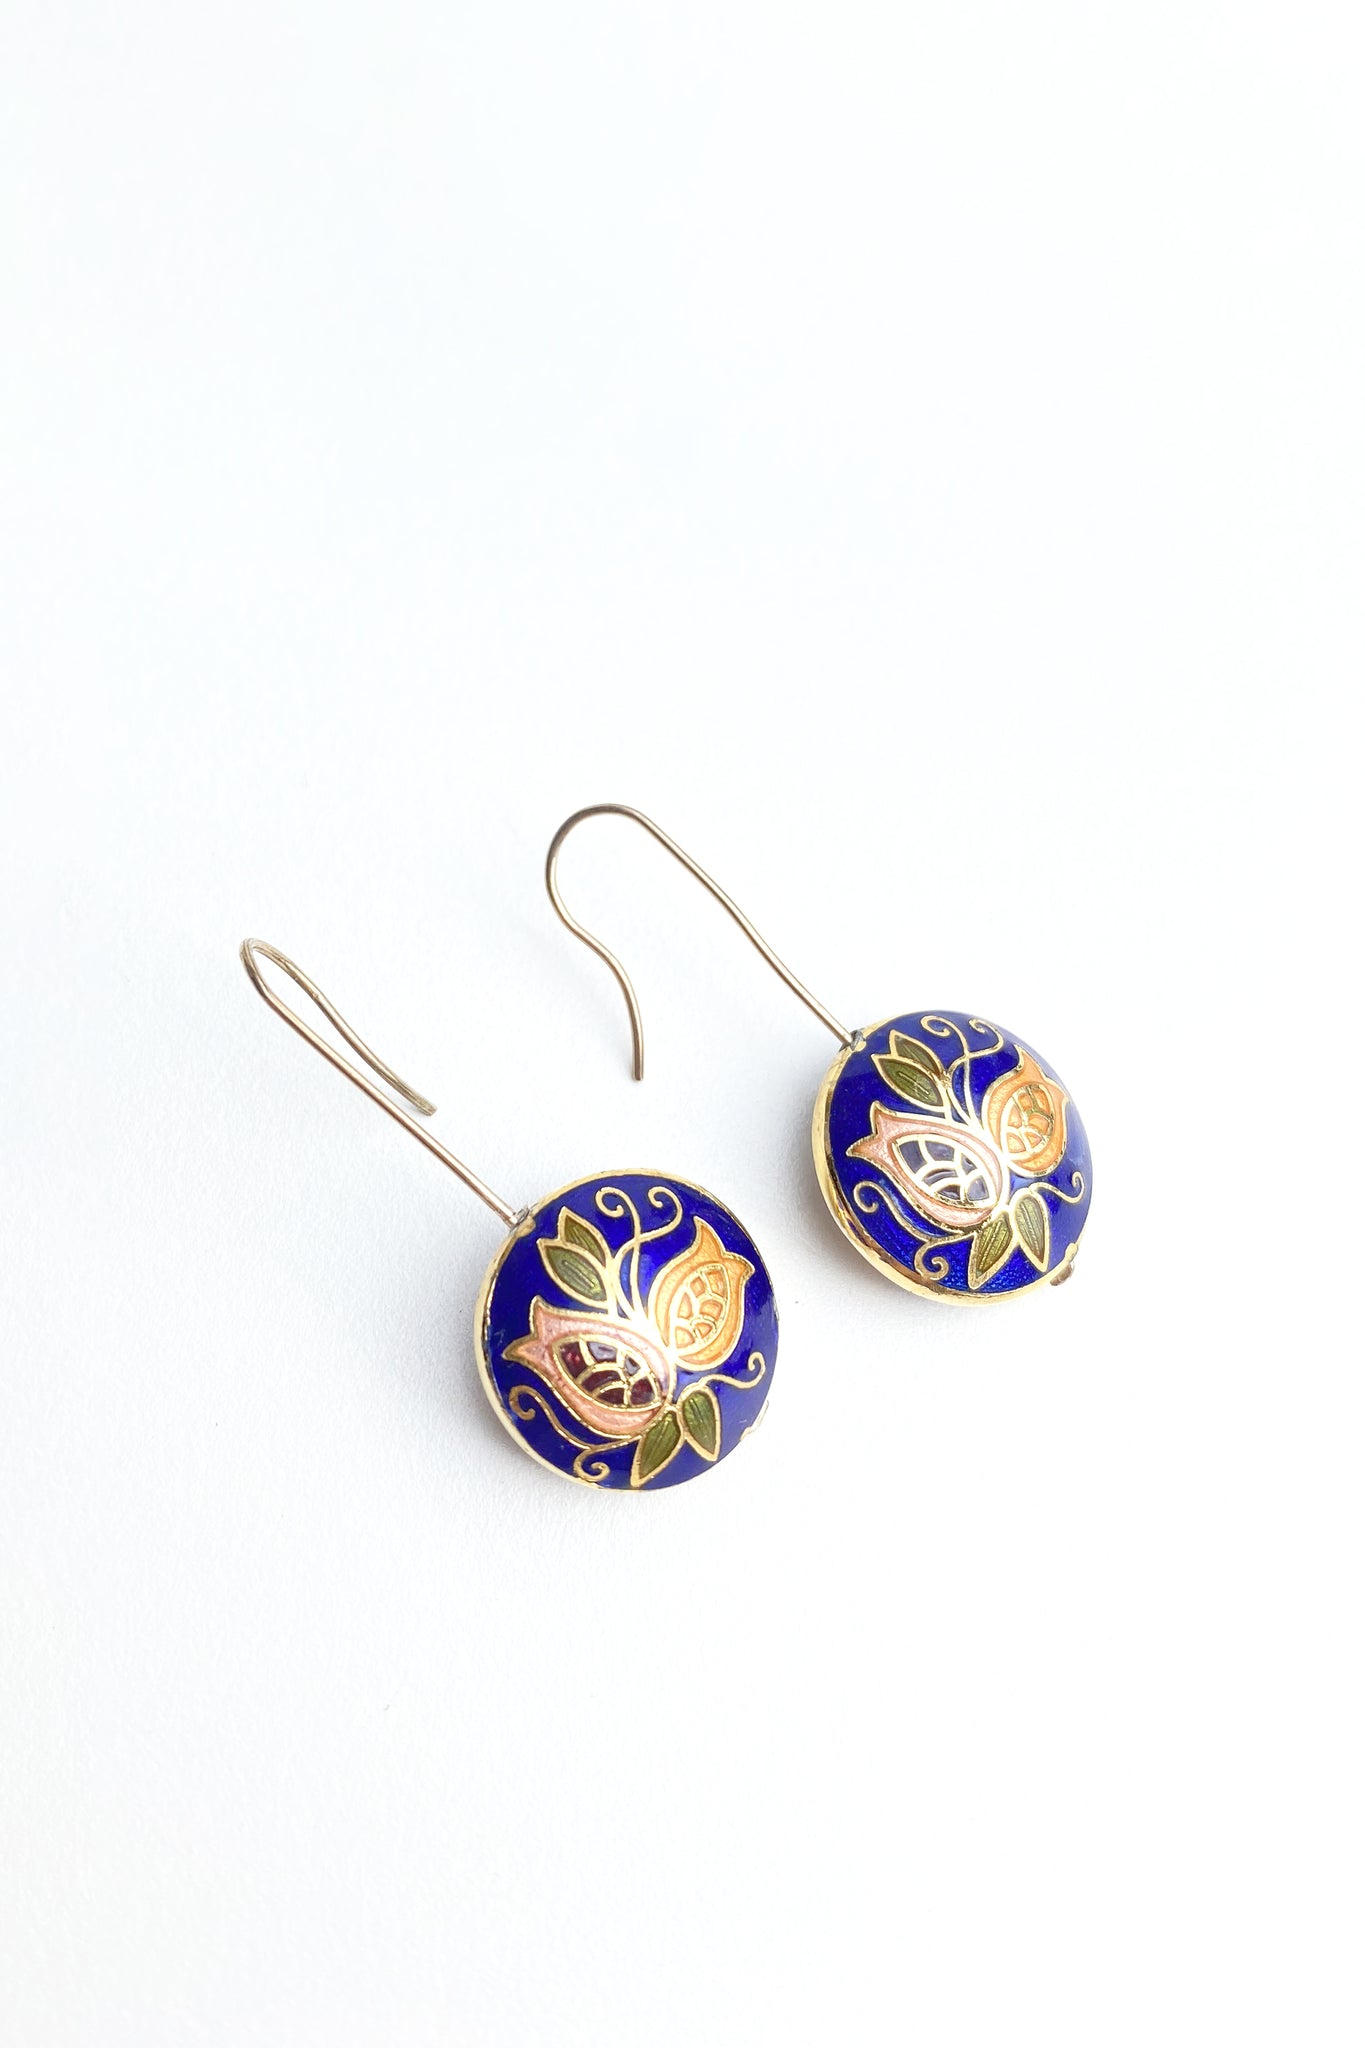 Cloisonne Enamel Drop earrings